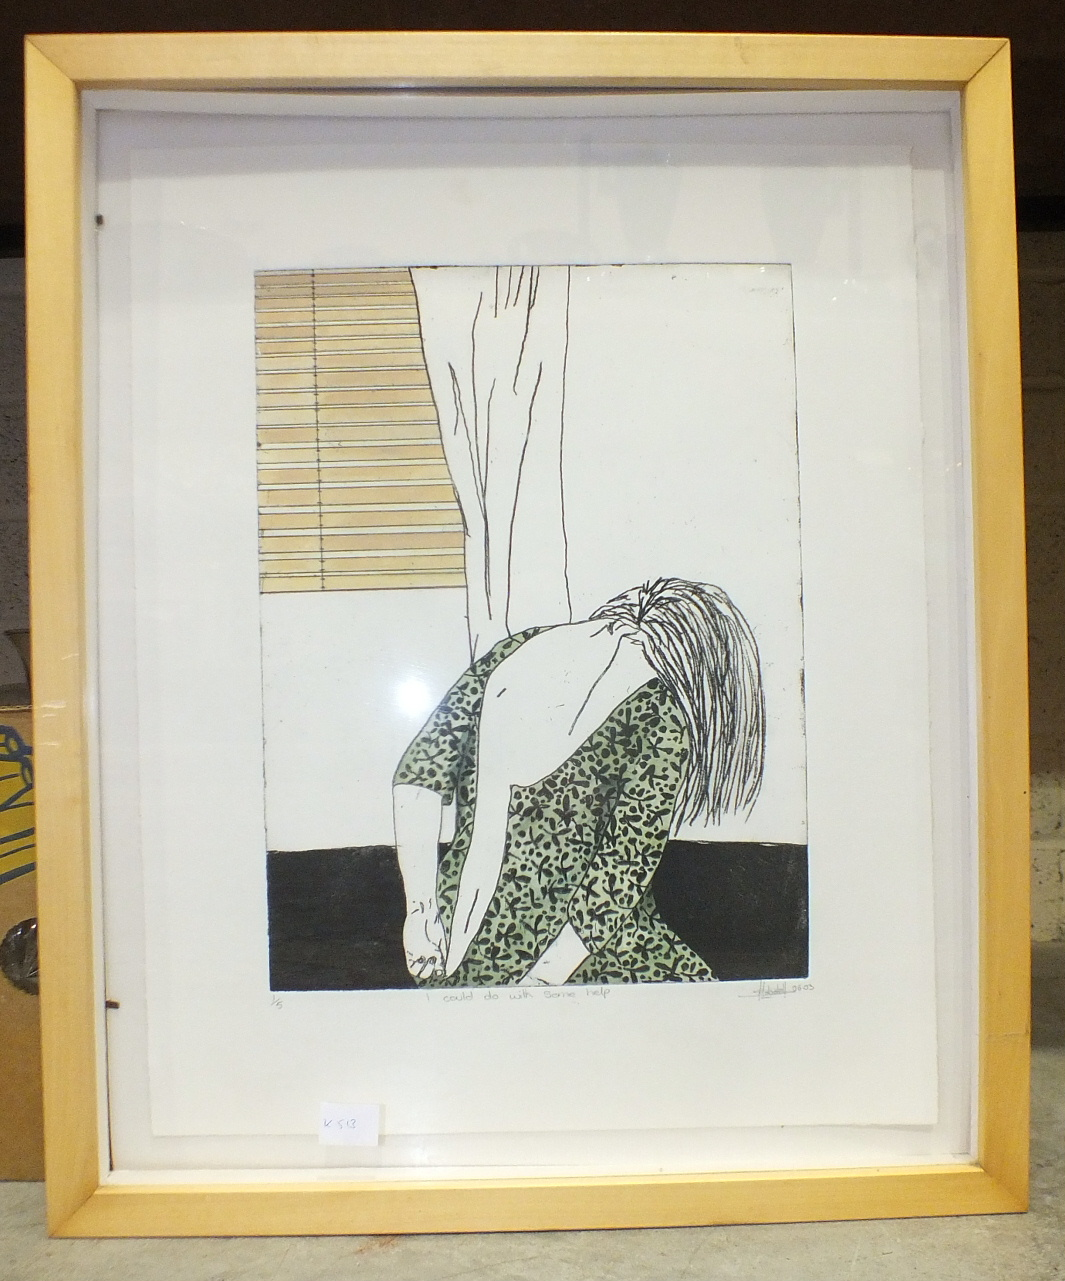 Hobdell, contemporary, 'I Could Do With Some Help', coloured screen print, numbered 1/5, signed